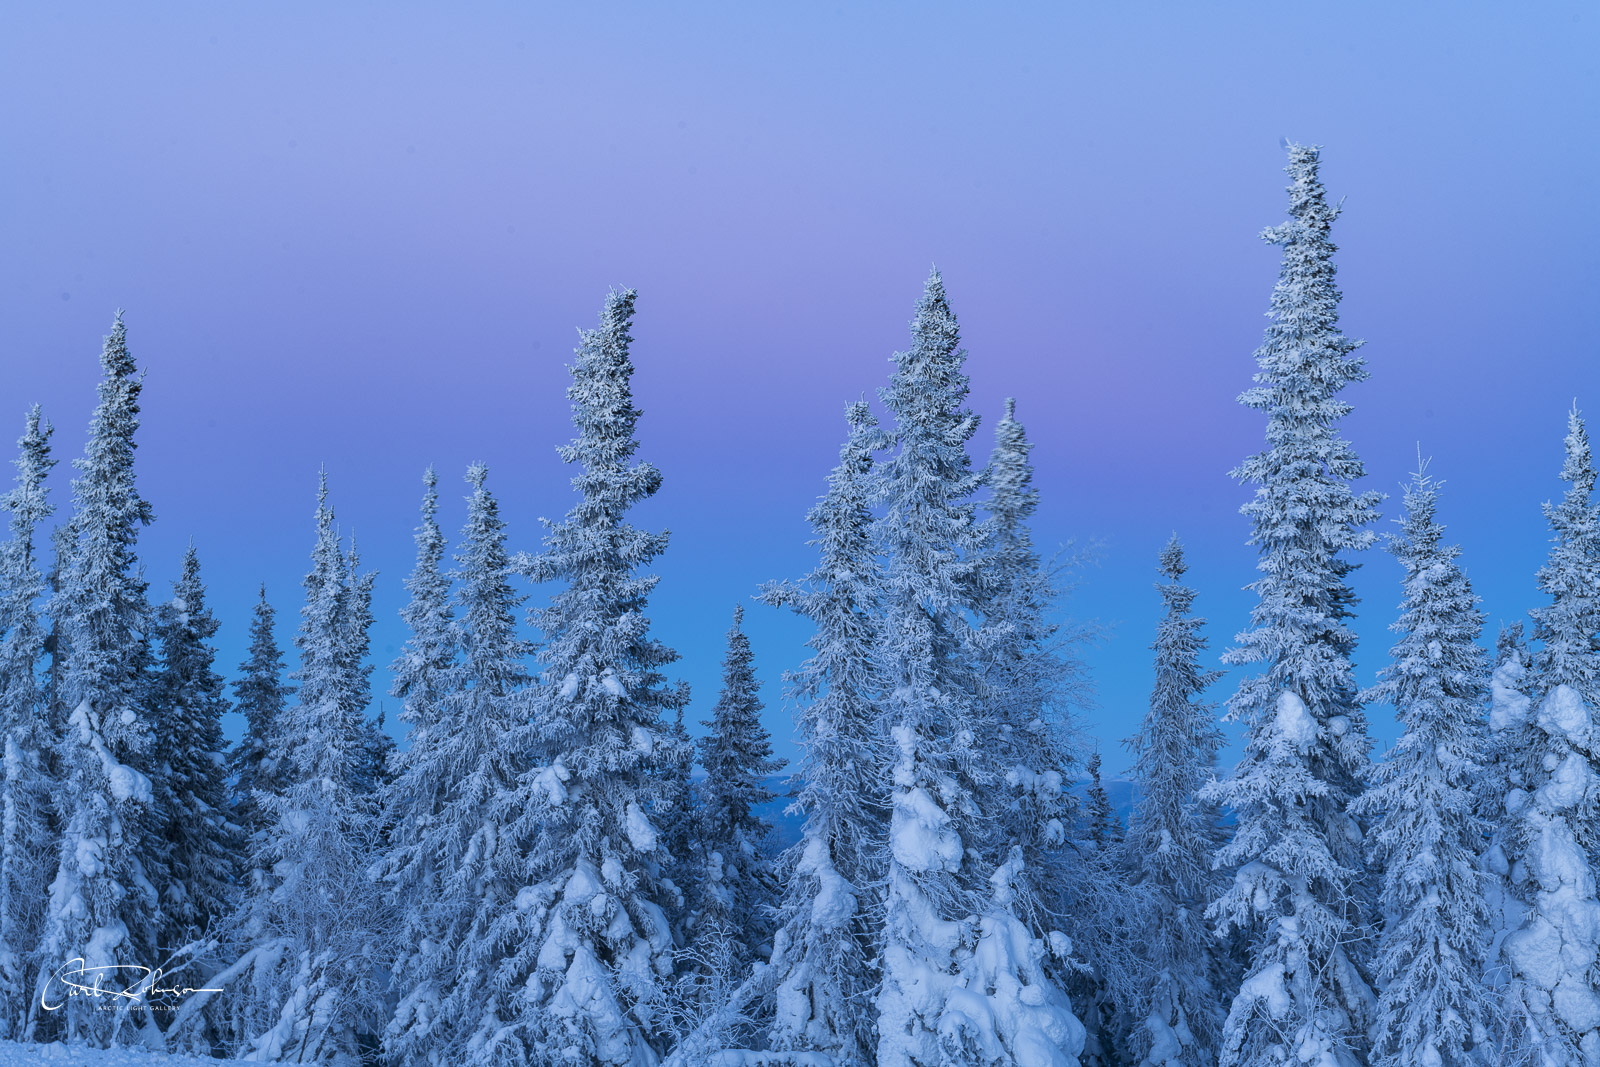 The pastel colors of dusk fill the sky behind a cluster of snowy trees.